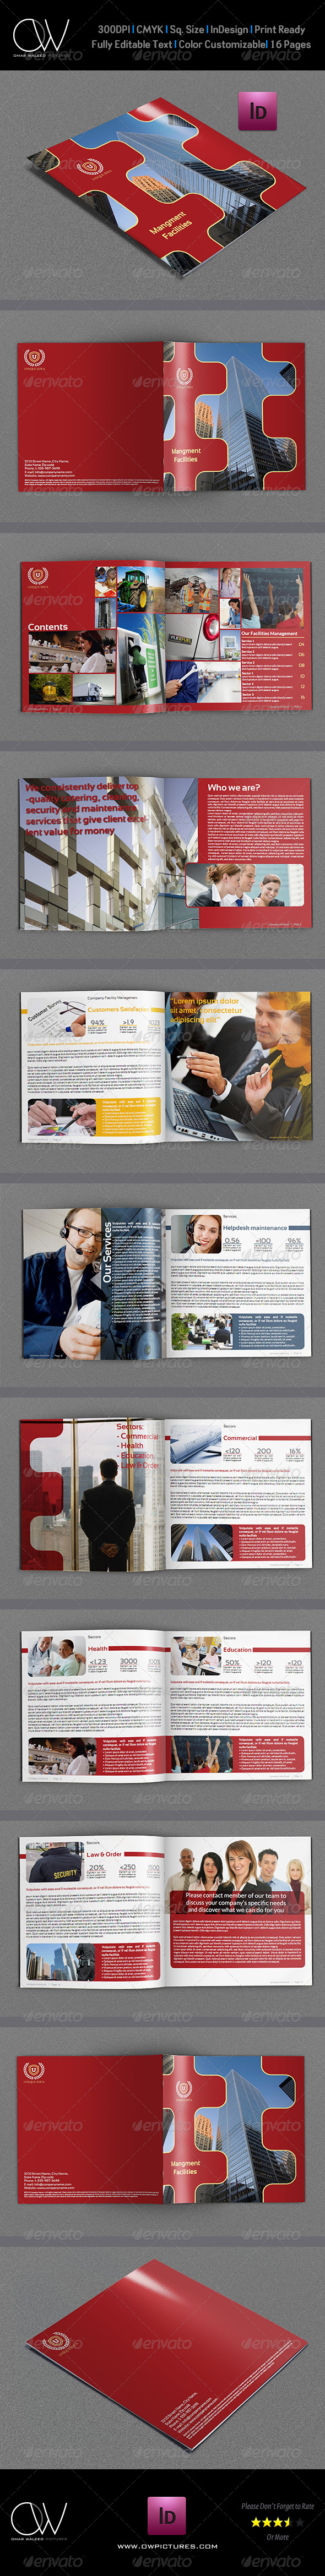 GraphicRiver Corporate Brochure Template Vol.11 16 Pages 5890288